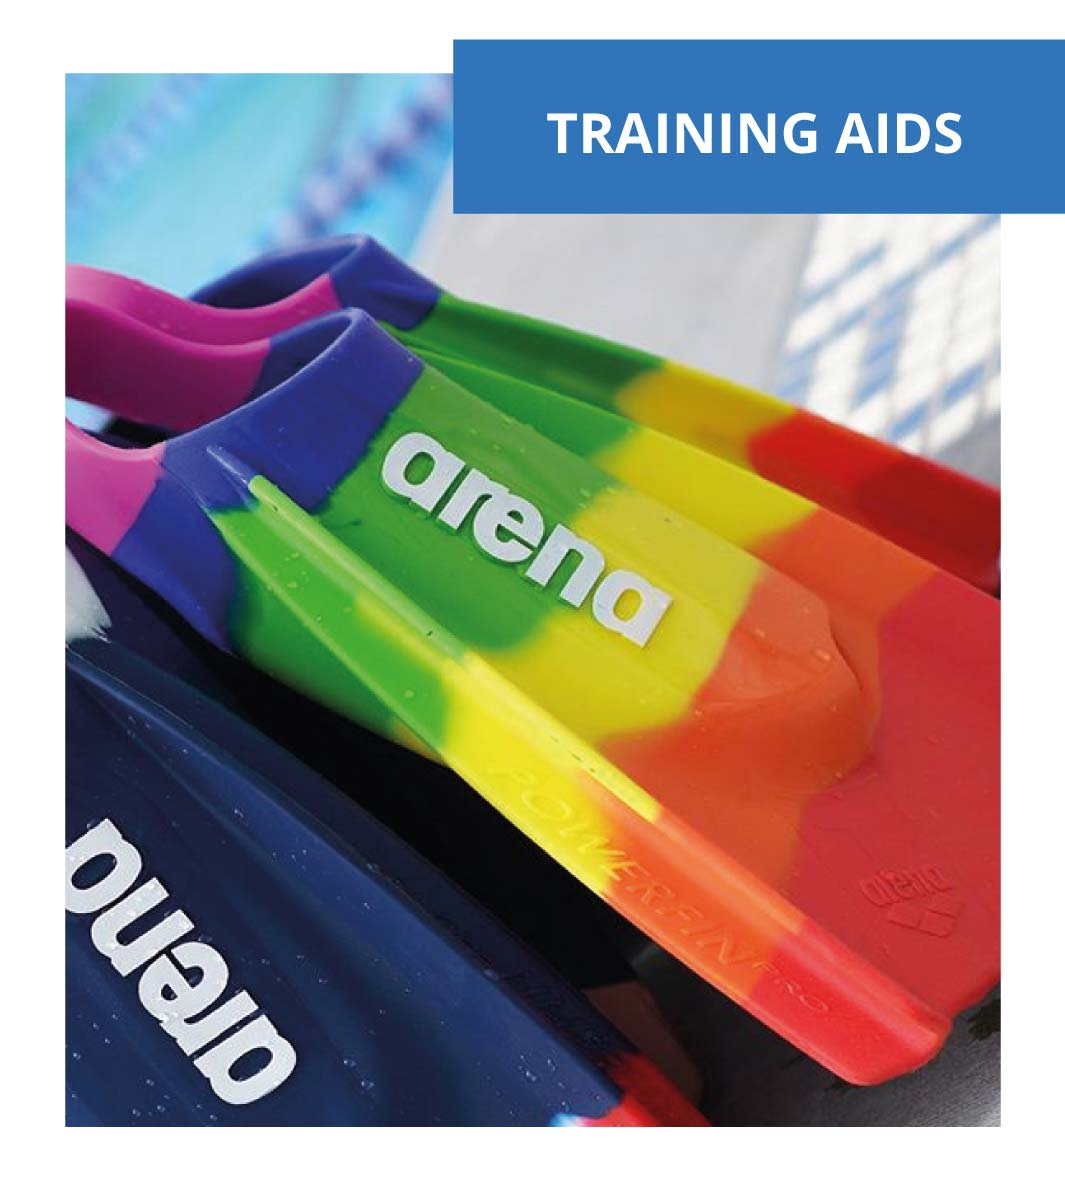 SHOP TRAINING AIDS